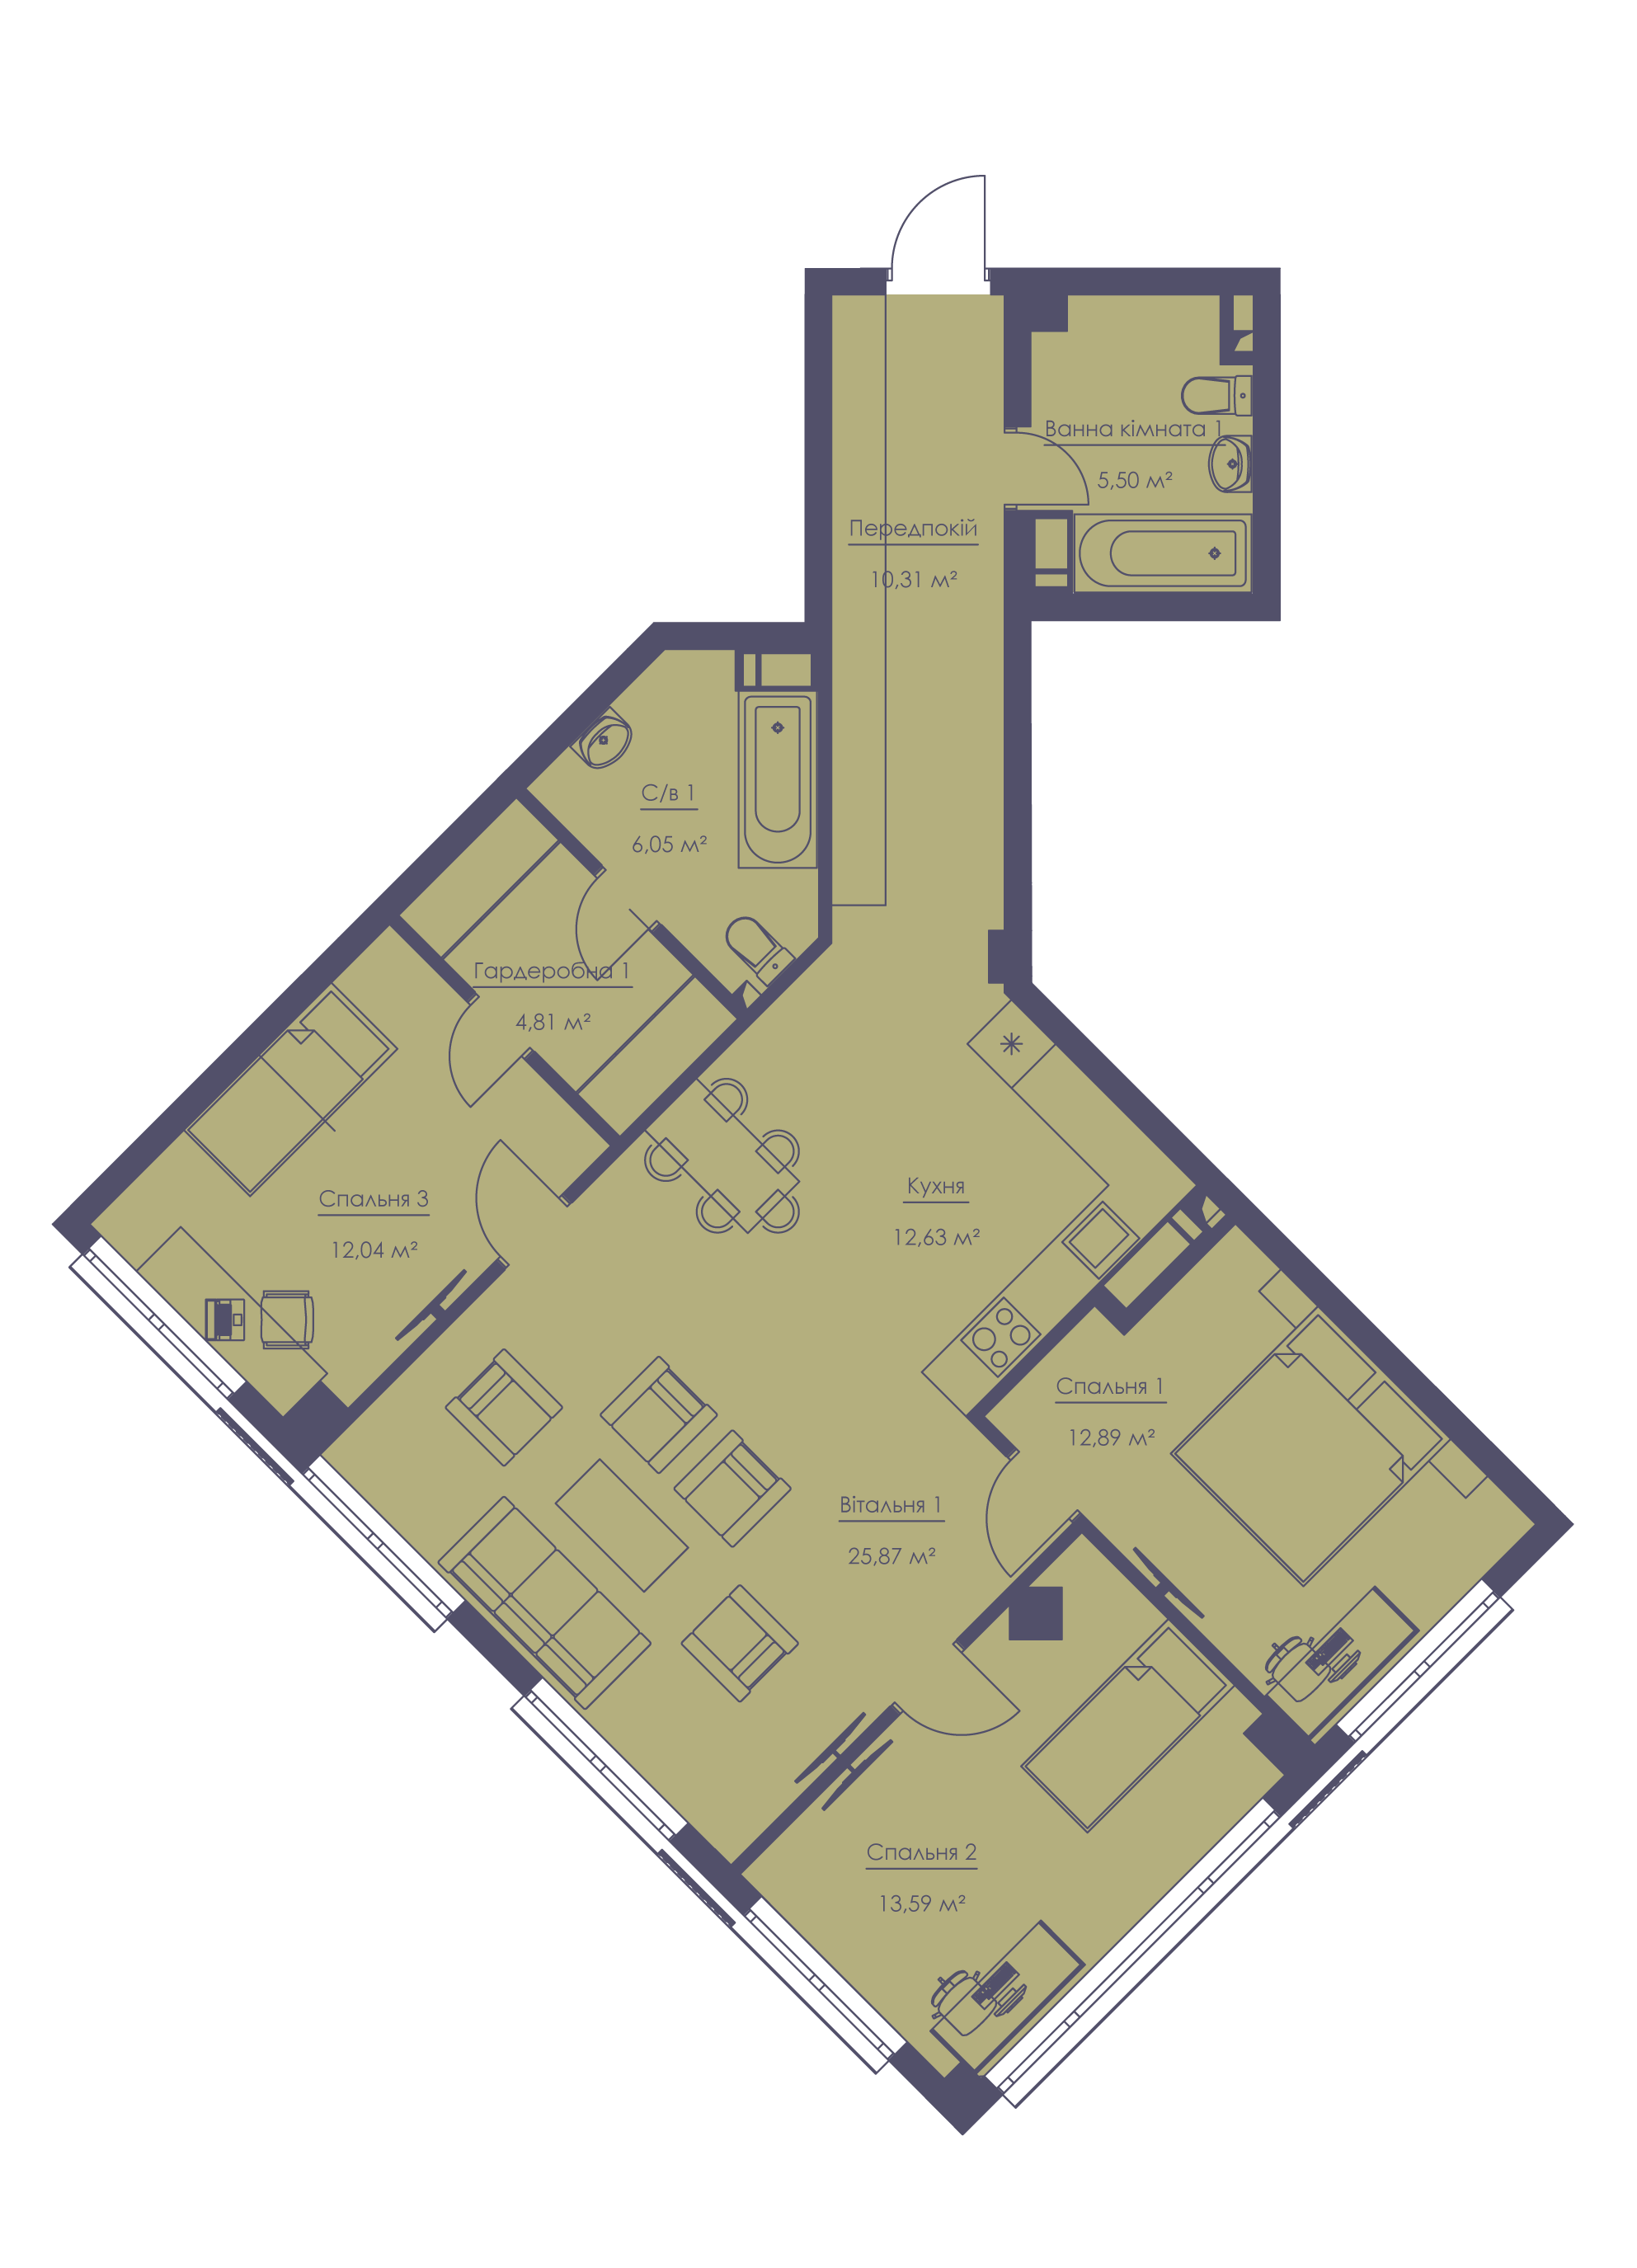 Apartment layout KV_49_4a_1_1_2-1